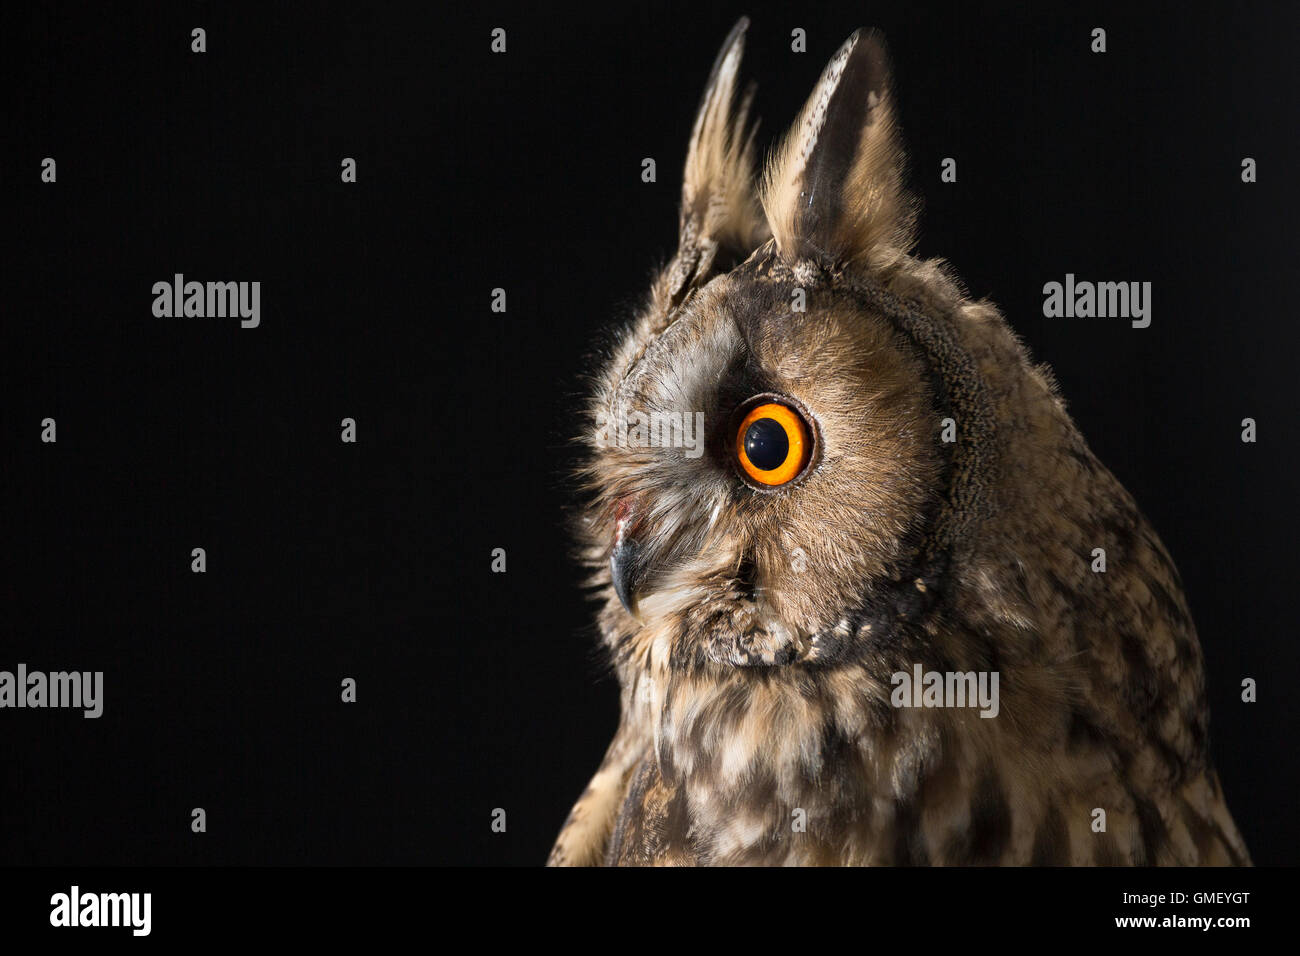 Waldohreule, Waldohr-Eule, Asio otus, long-eared owl, Le Hibou moyen-duc Stock Photo